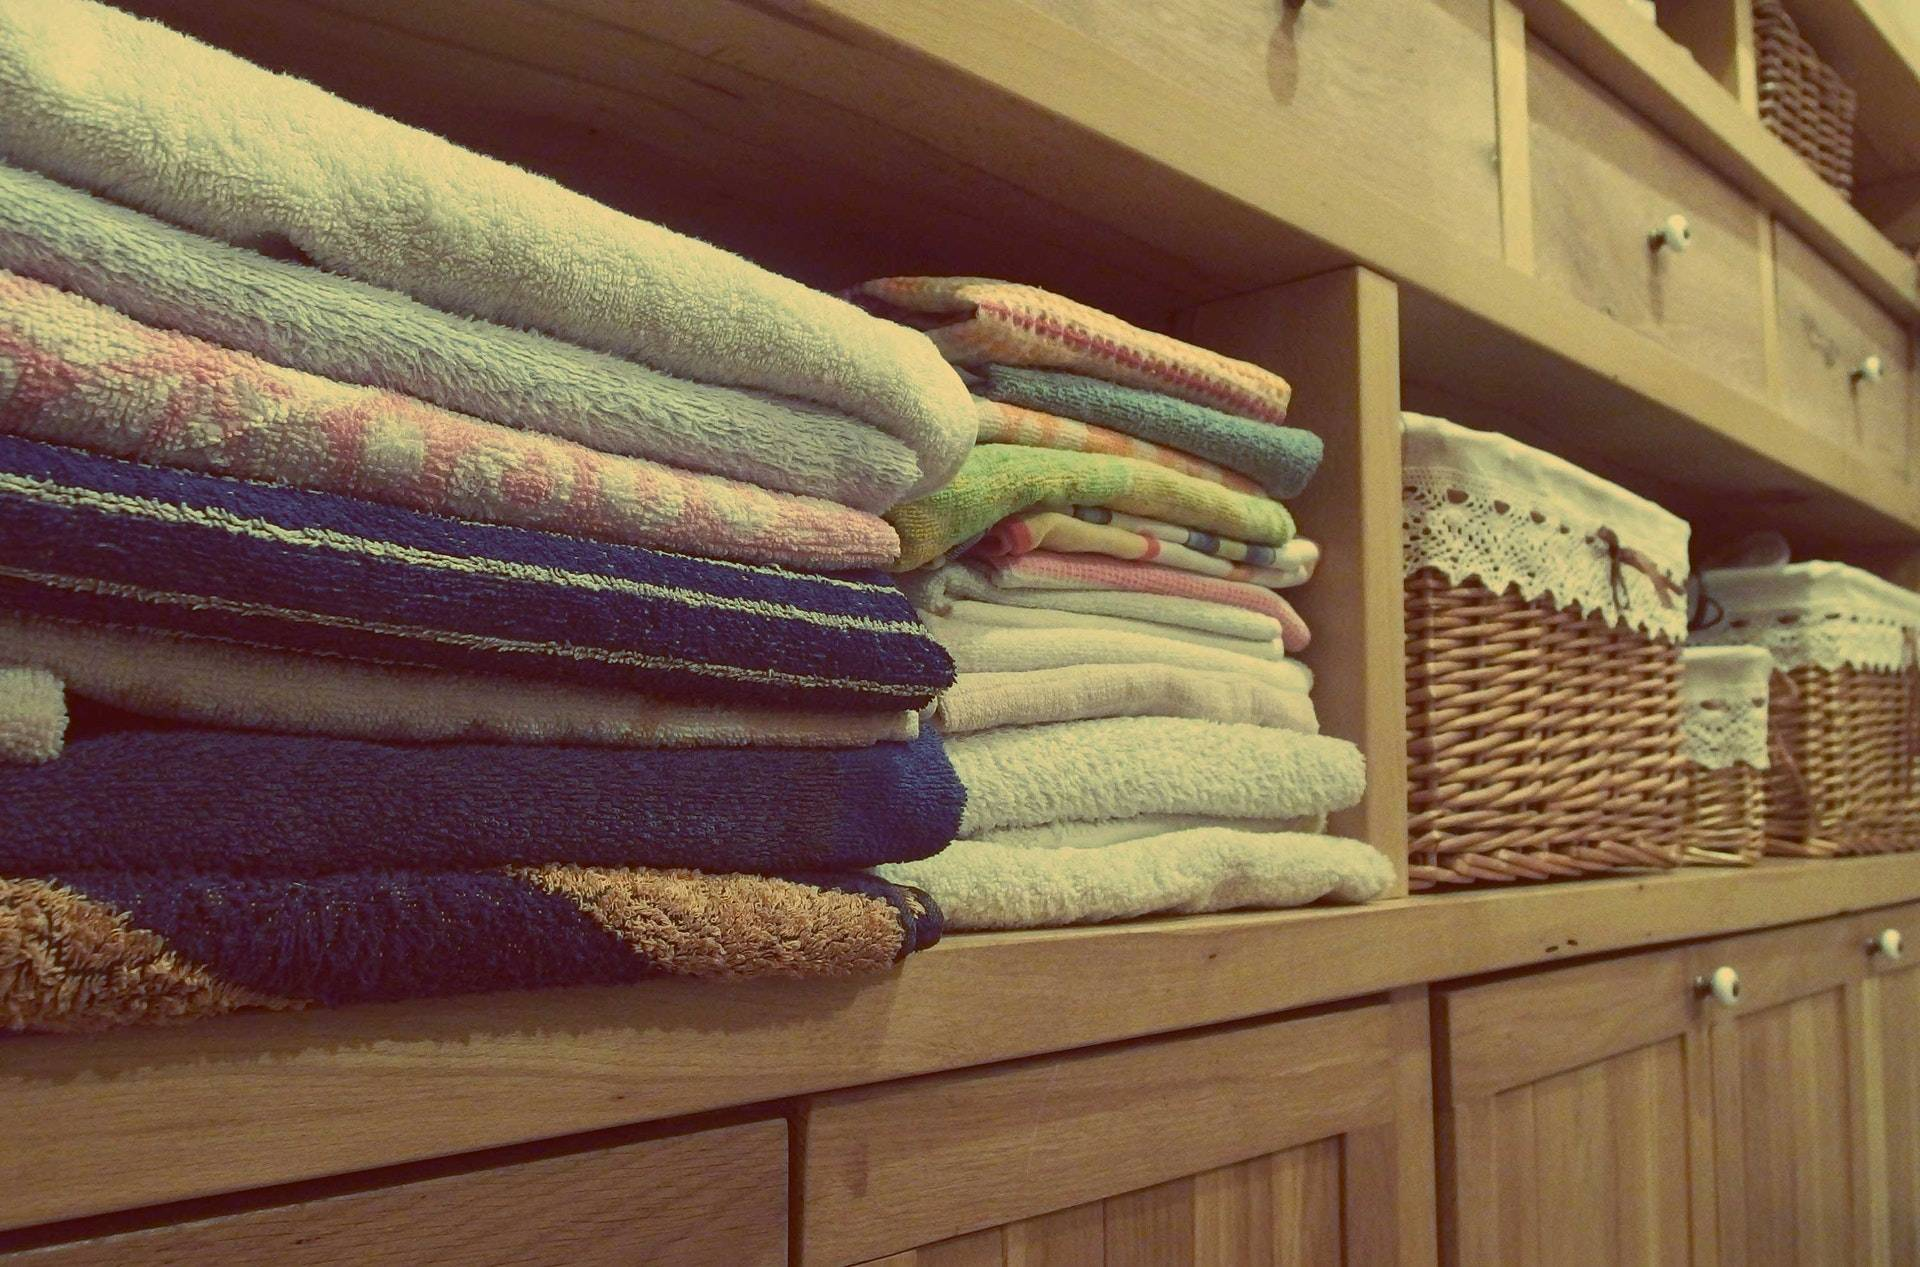 clean towels and baskets